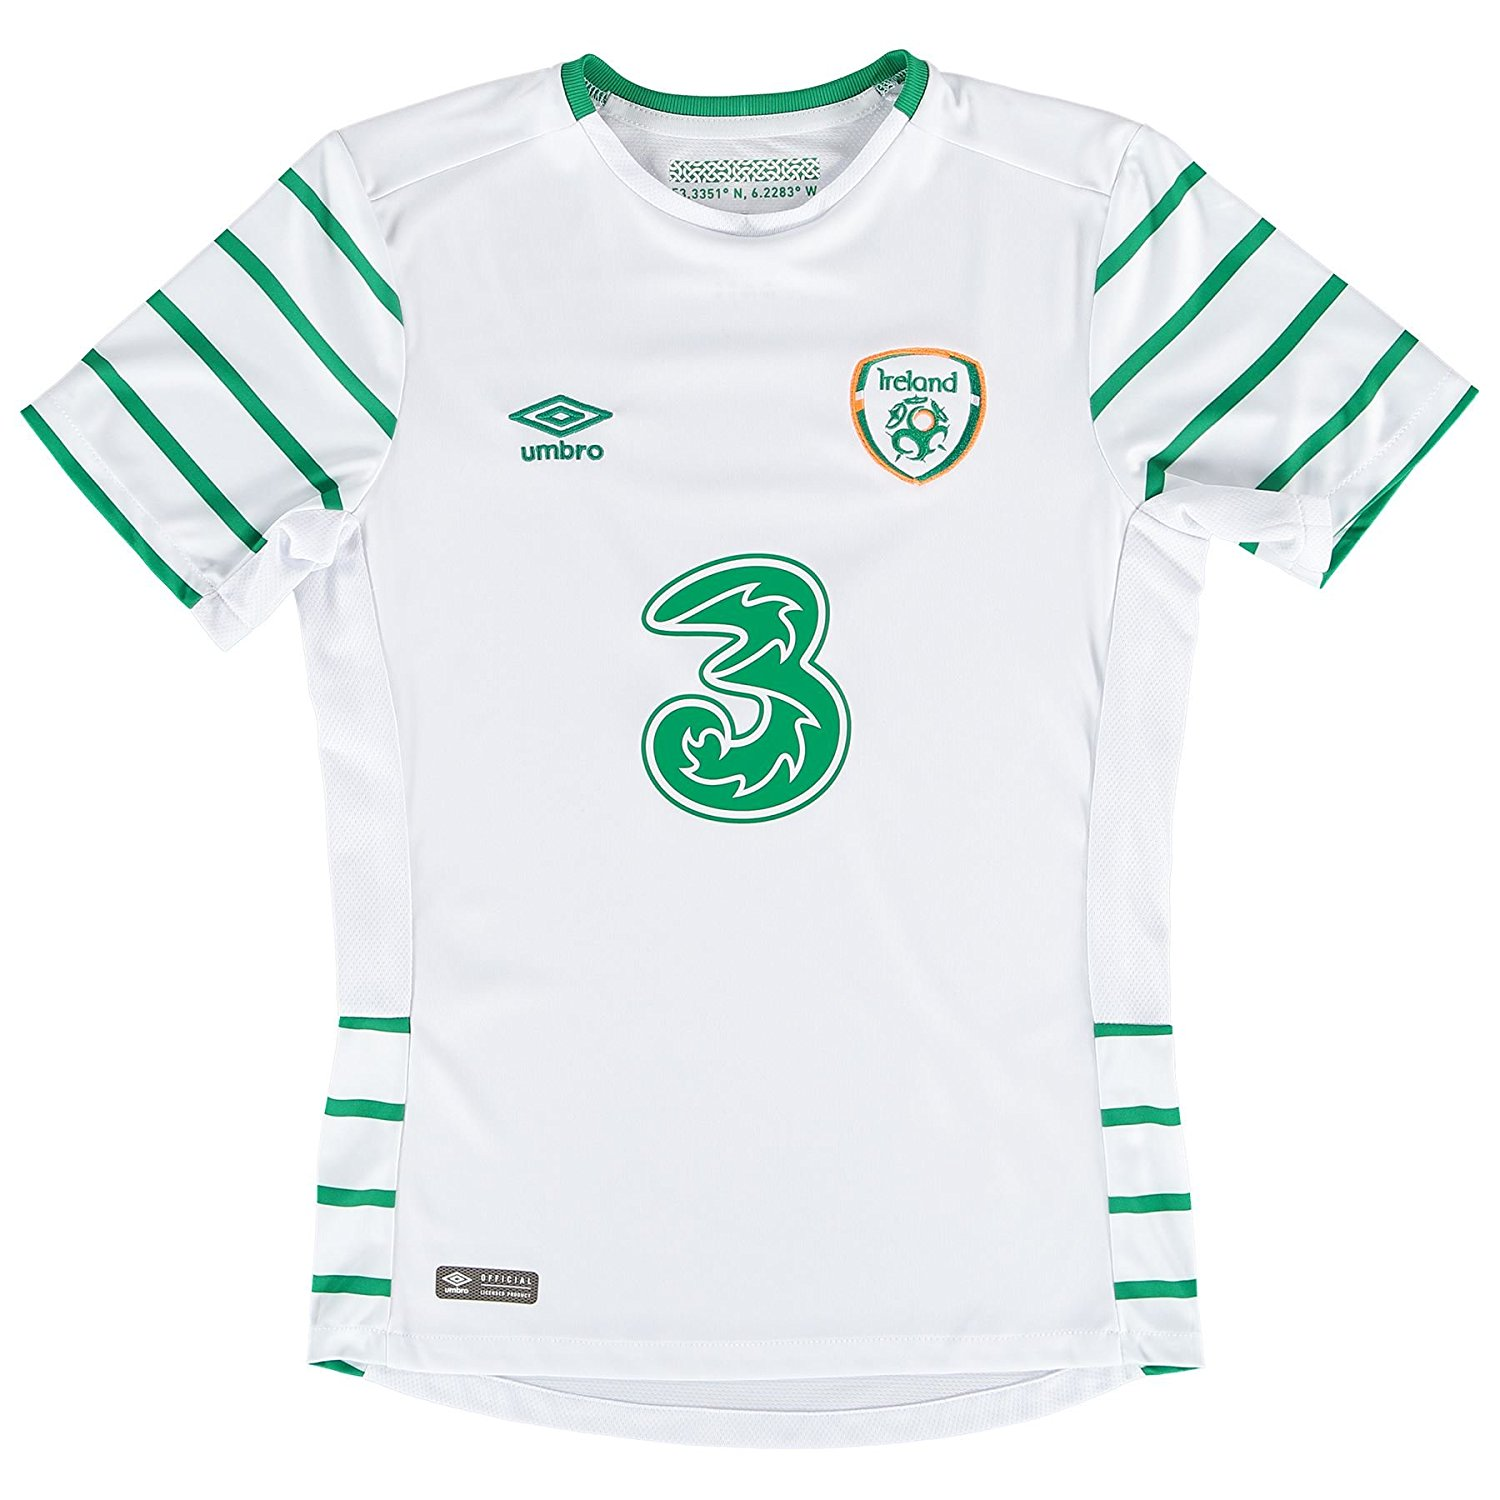 eb0d8302ae Get Quotations · 2016-2017 Ireland Away Umbro Football Shirt (Kids)